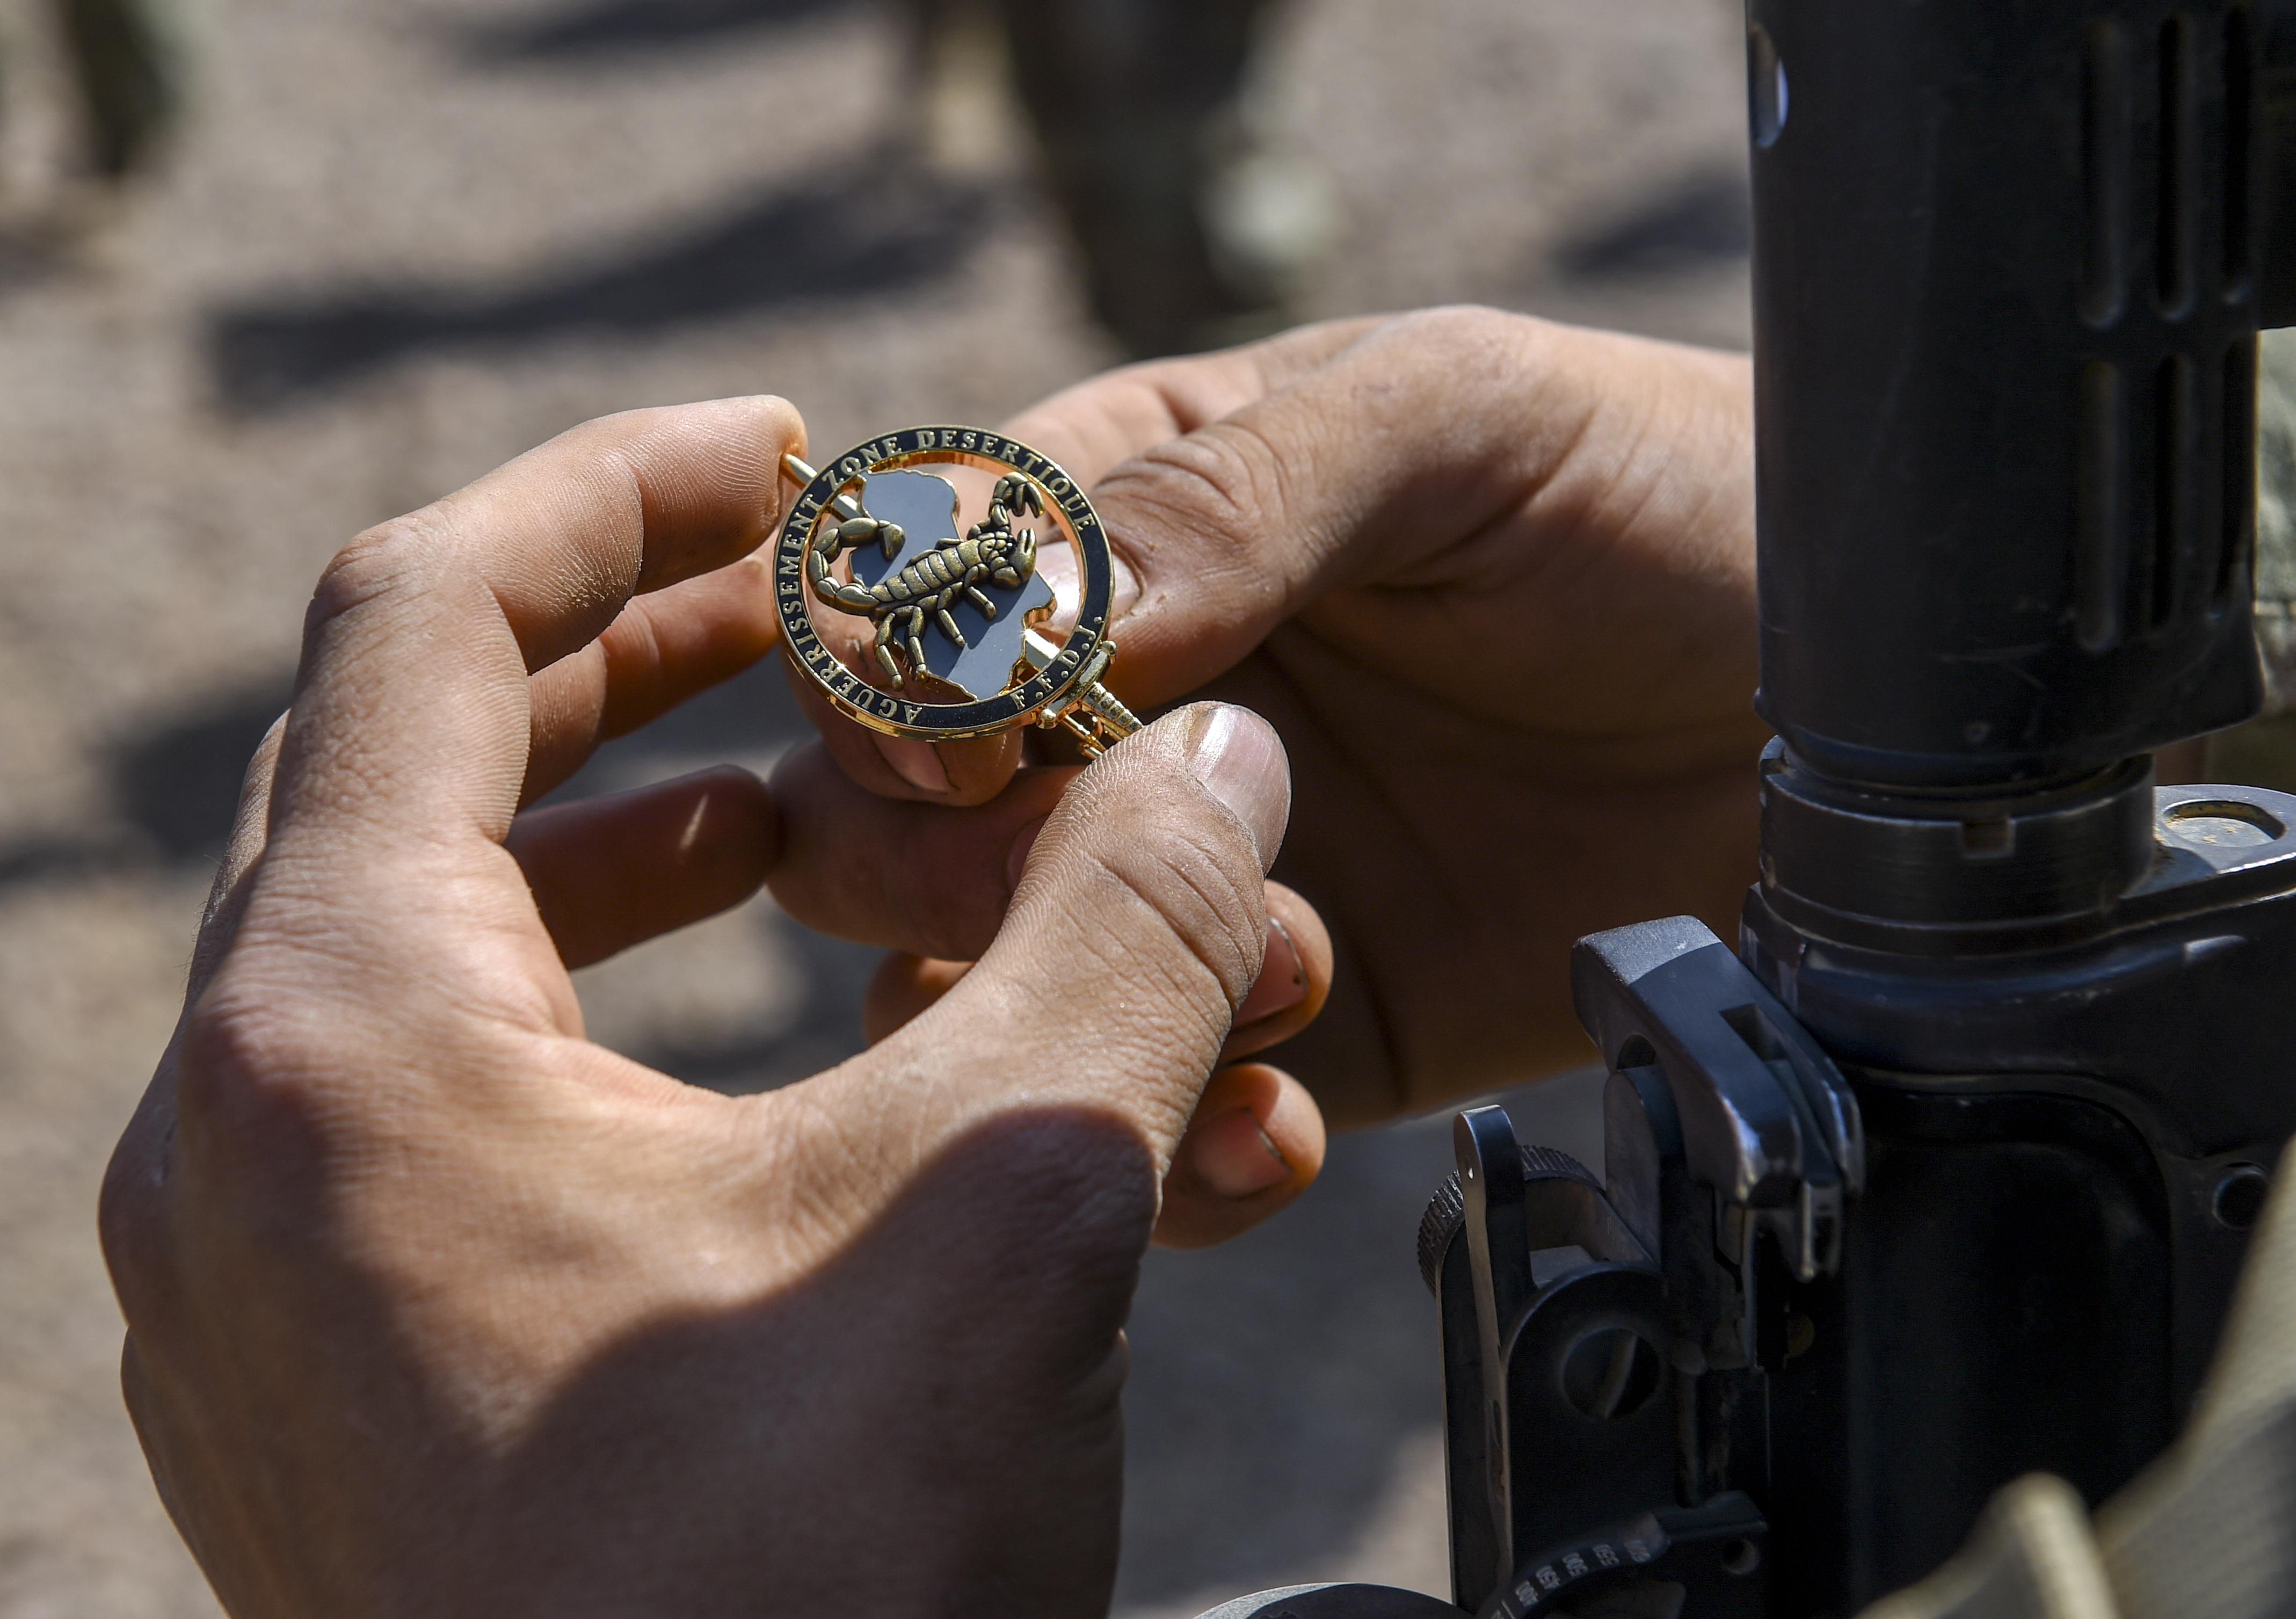 A U.S. Army Soldier assigned to Combined Joint Task Force - Horn of Africa (CJTF-HOA) looks at his French Desert Commando Course pin after the graduation ceremony near Ali Sabieh, Djibouti, Dec. 7, 2017. U.S. service members assigned to CJTF-HOA participated in the 12-day course, in which they learned the fundamentals of desert combat, survival, and troop movements while also bridging language and cultural barriers between French and American troops. (U.S. Air Force photo by Staff Sgt. Timothy Moore)